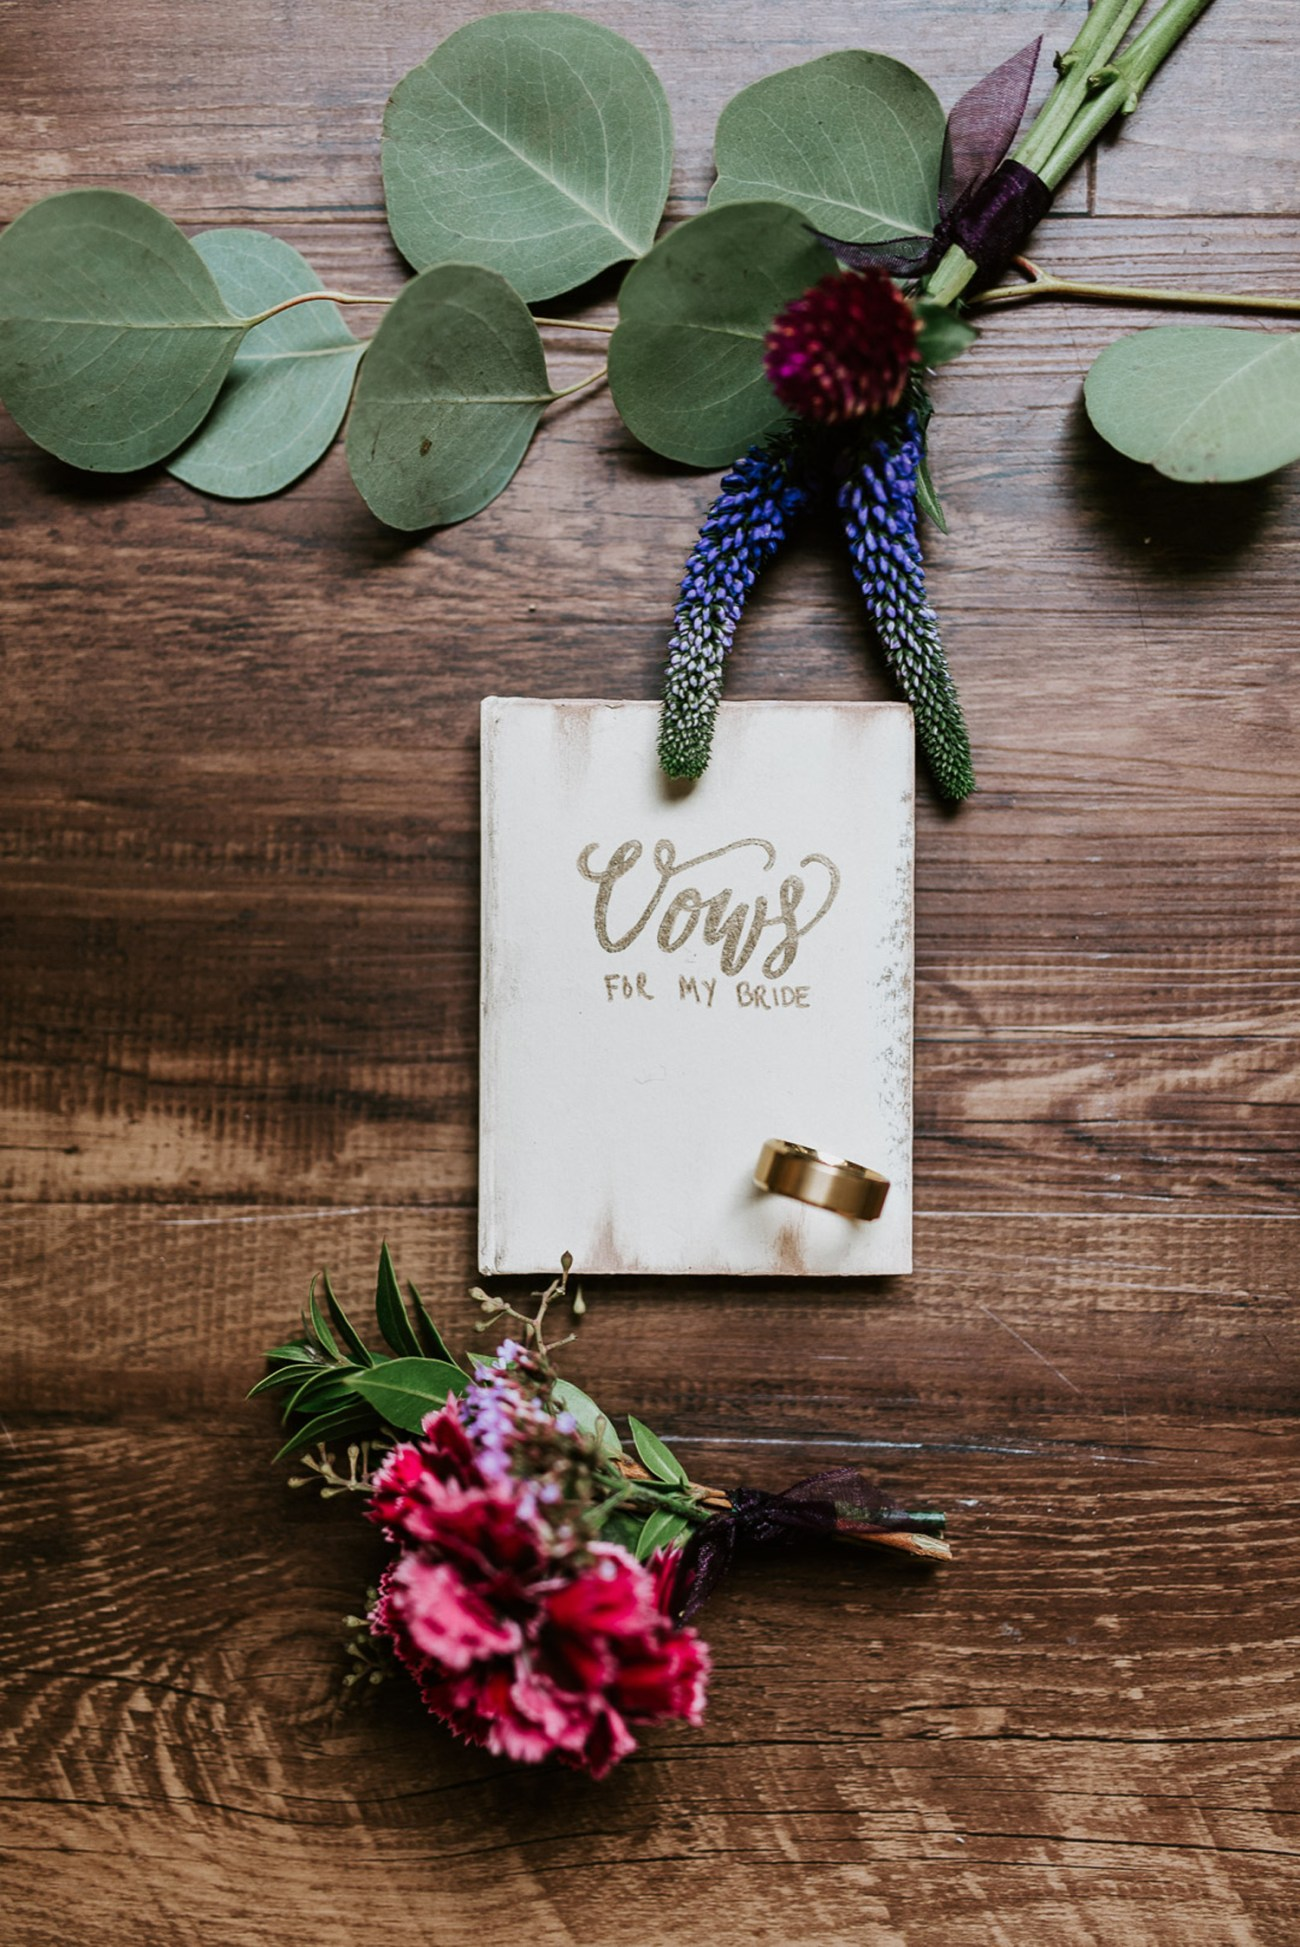 Personalized vow book and groom details on wedding day, boutonniere details